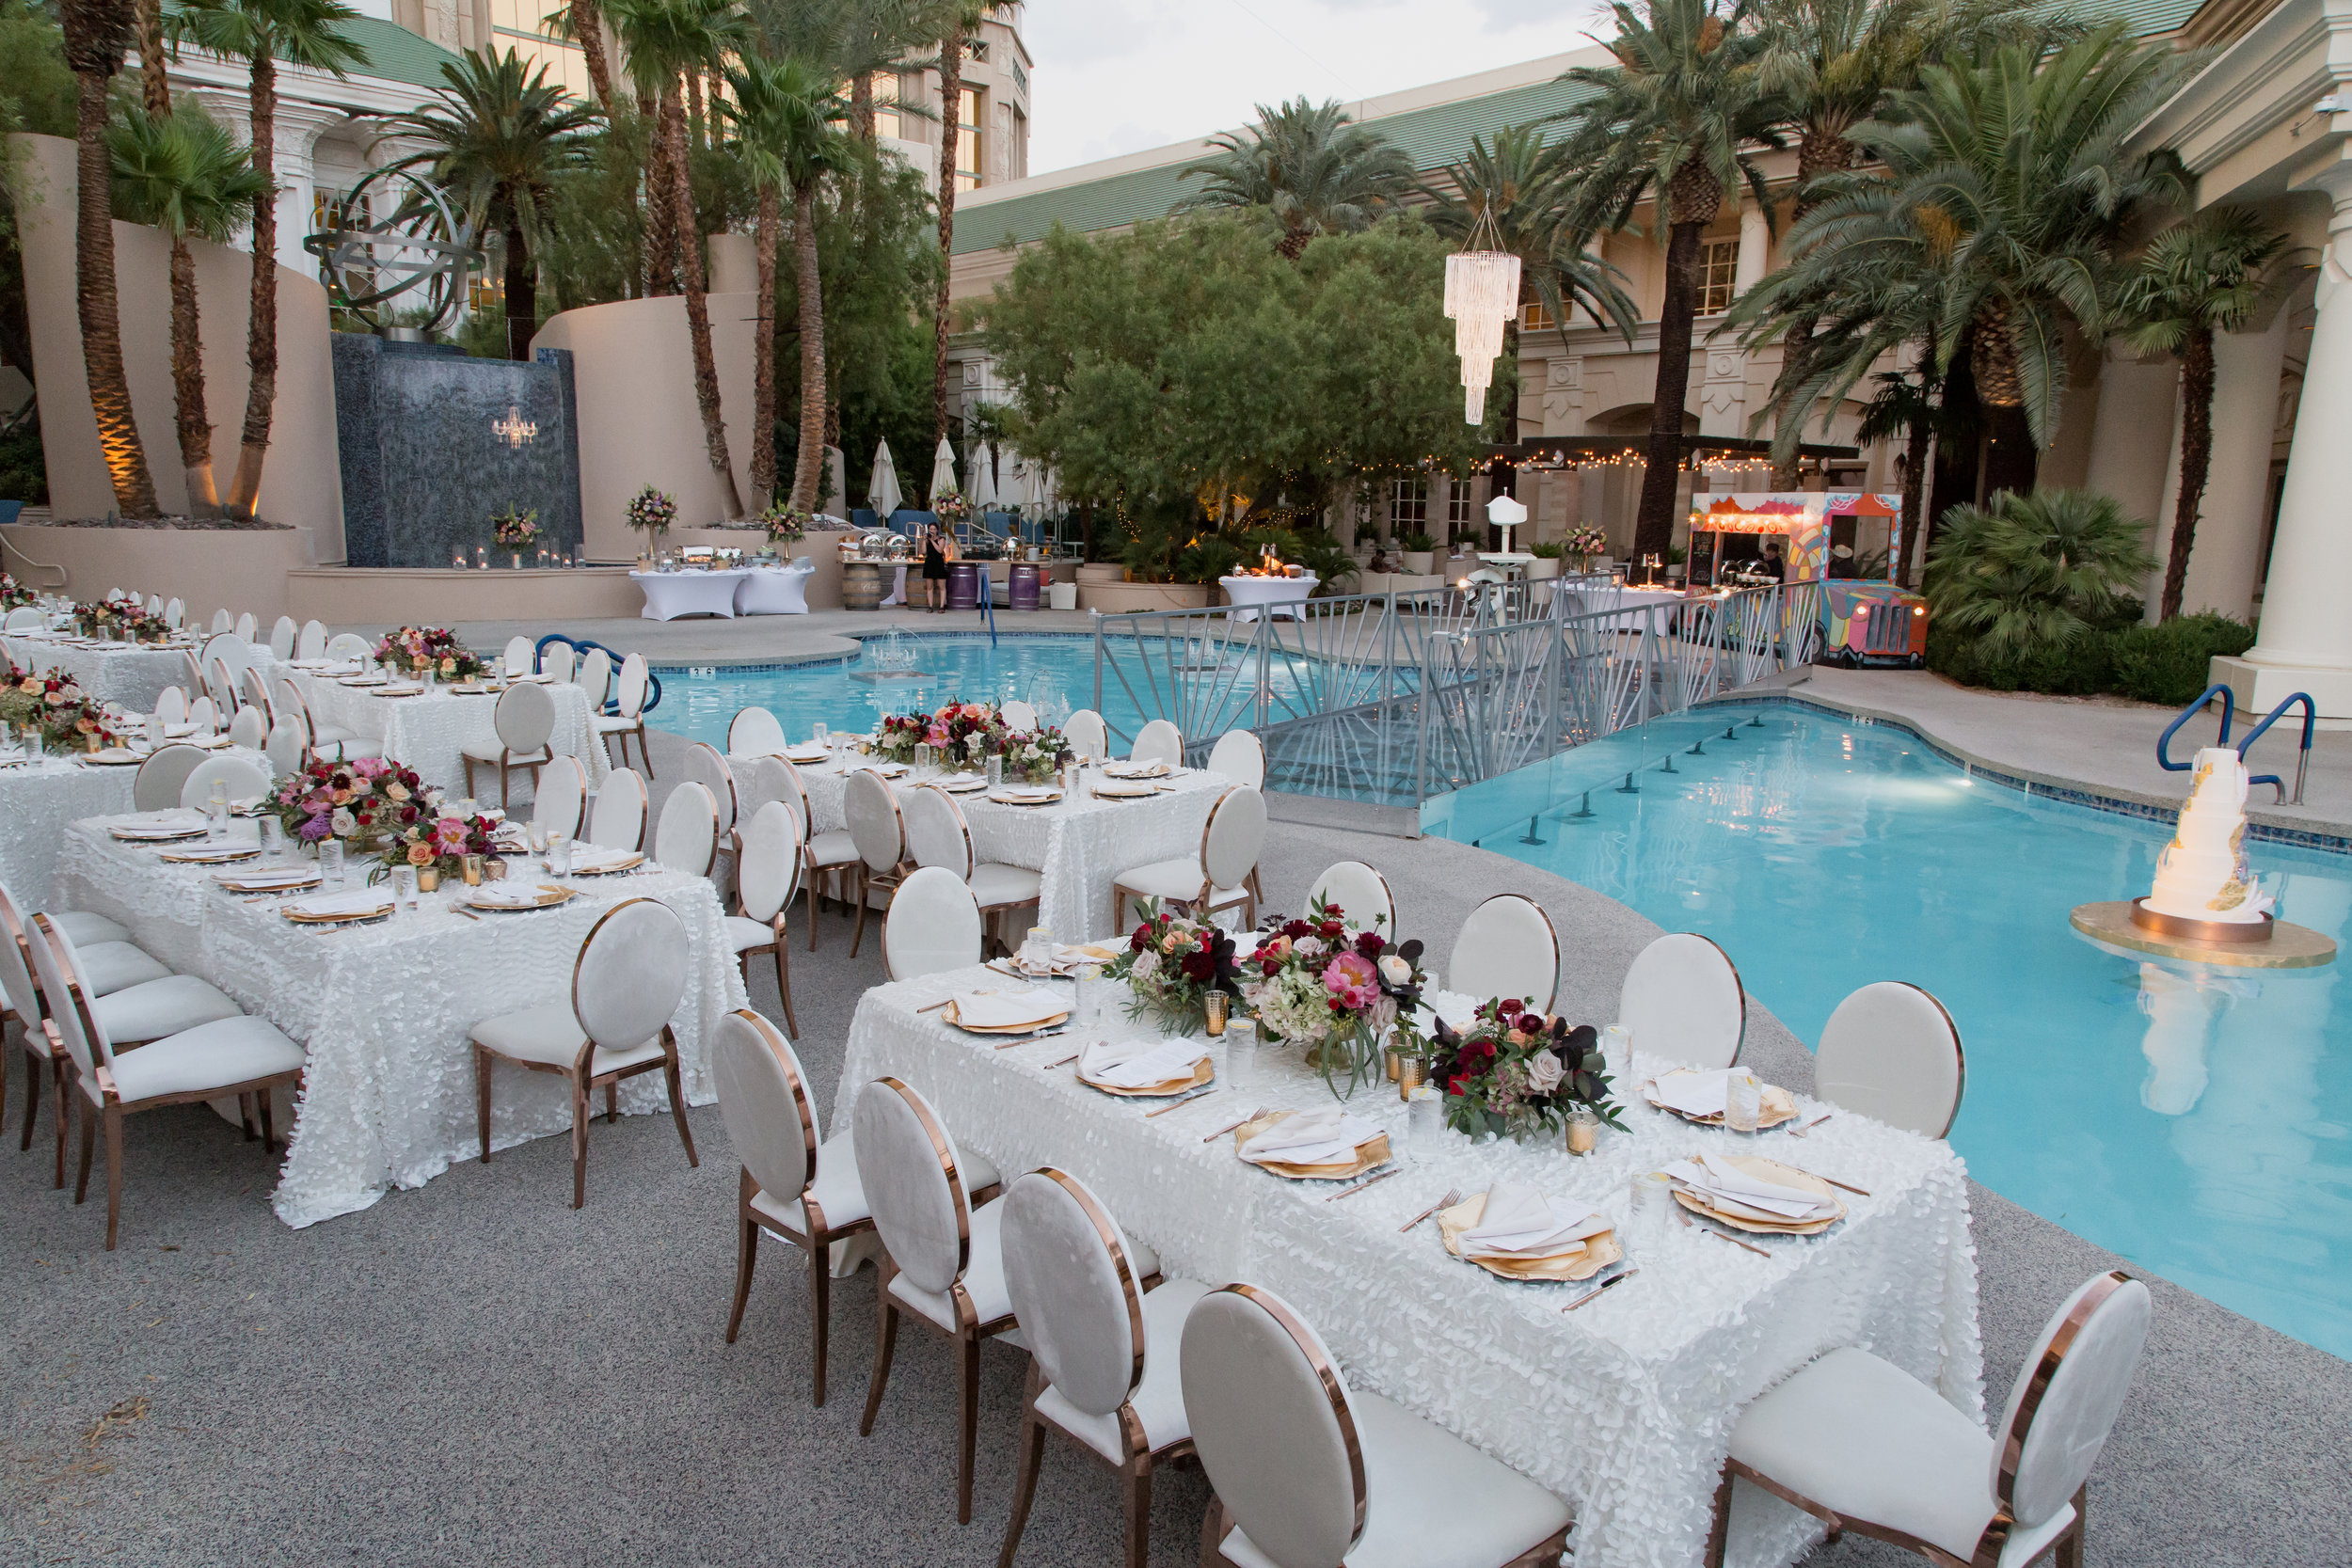 Poolside wedding in Las Vegas with chandeliers and floating wedding cake.Destination Wedding Planner  Andrea Eppolito ·Photos by  Adam Frazier Photography ·Floral and Decor by  Destinations by Design · Lighting by  LED Unplugged ·Venue · Invitations  Ceci New York  · Menus by  Alligator Soup